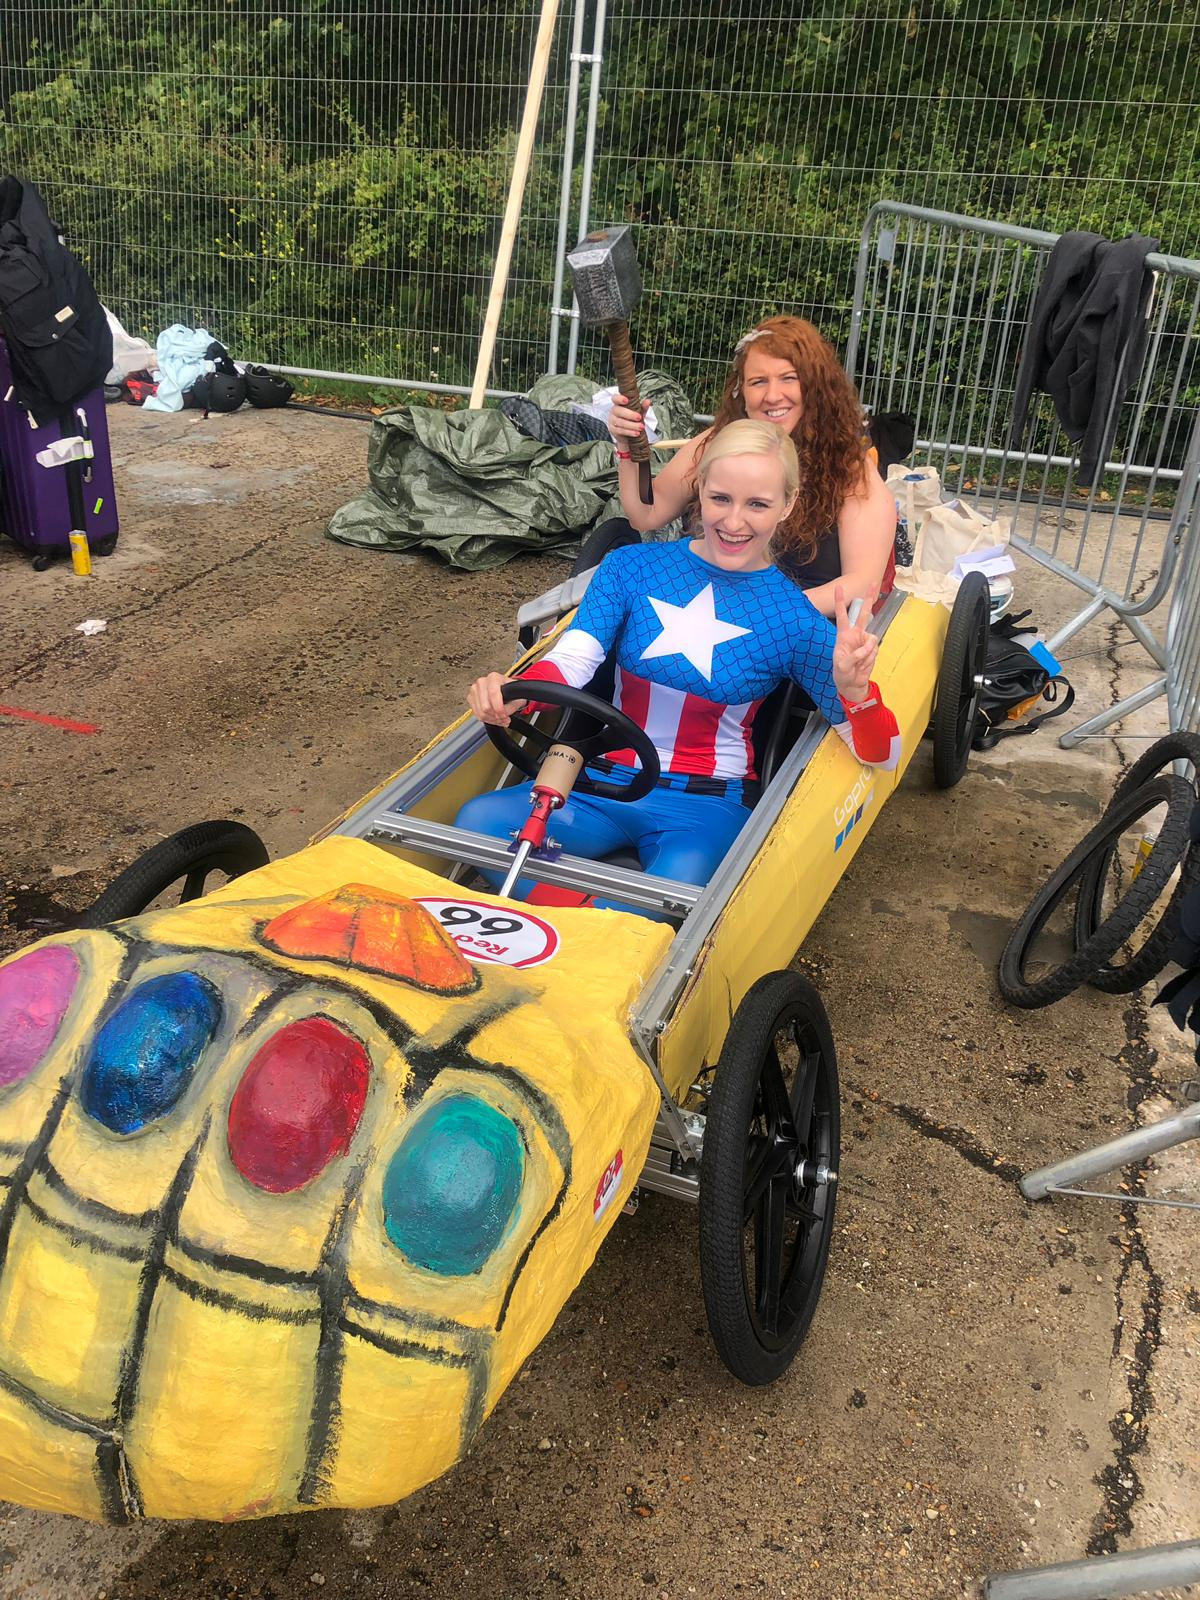 Appearance at the Red Bull Soapbox Race in London as part of an all-women team